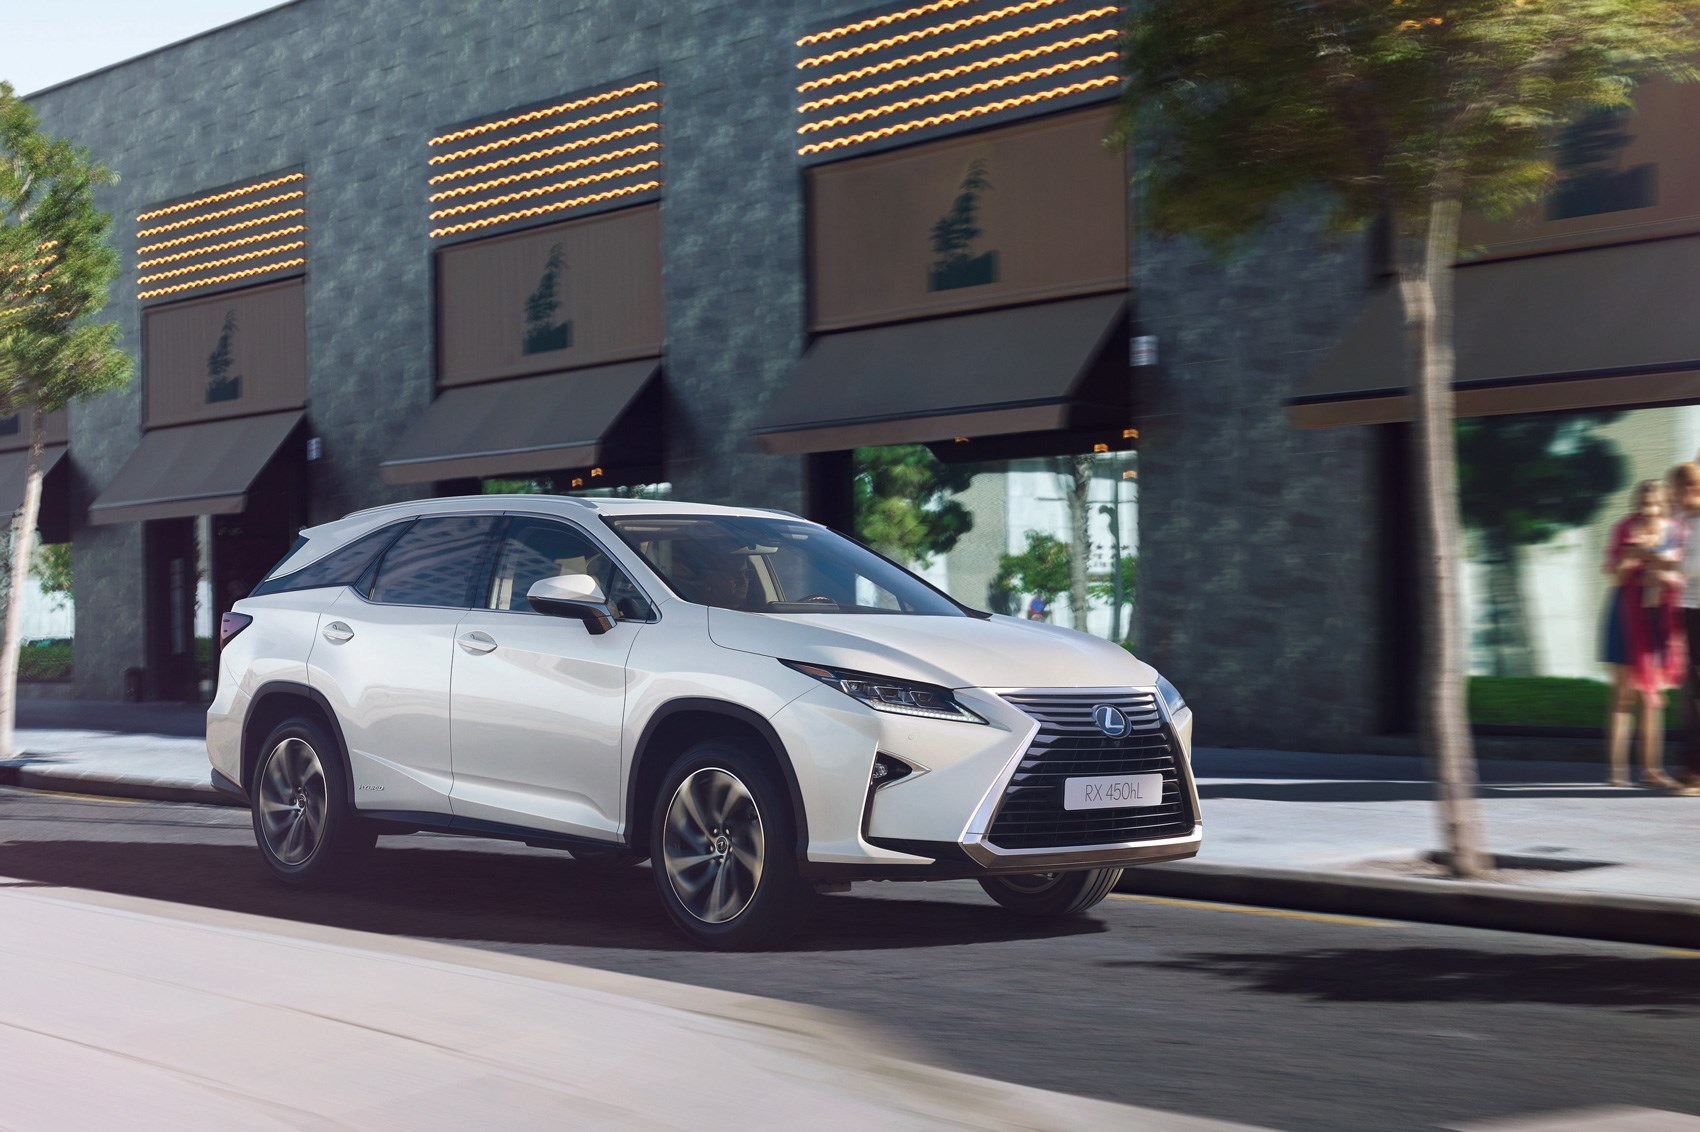 RX tra space new Lexus RX L revealed at 2017 LA motor show by CAR